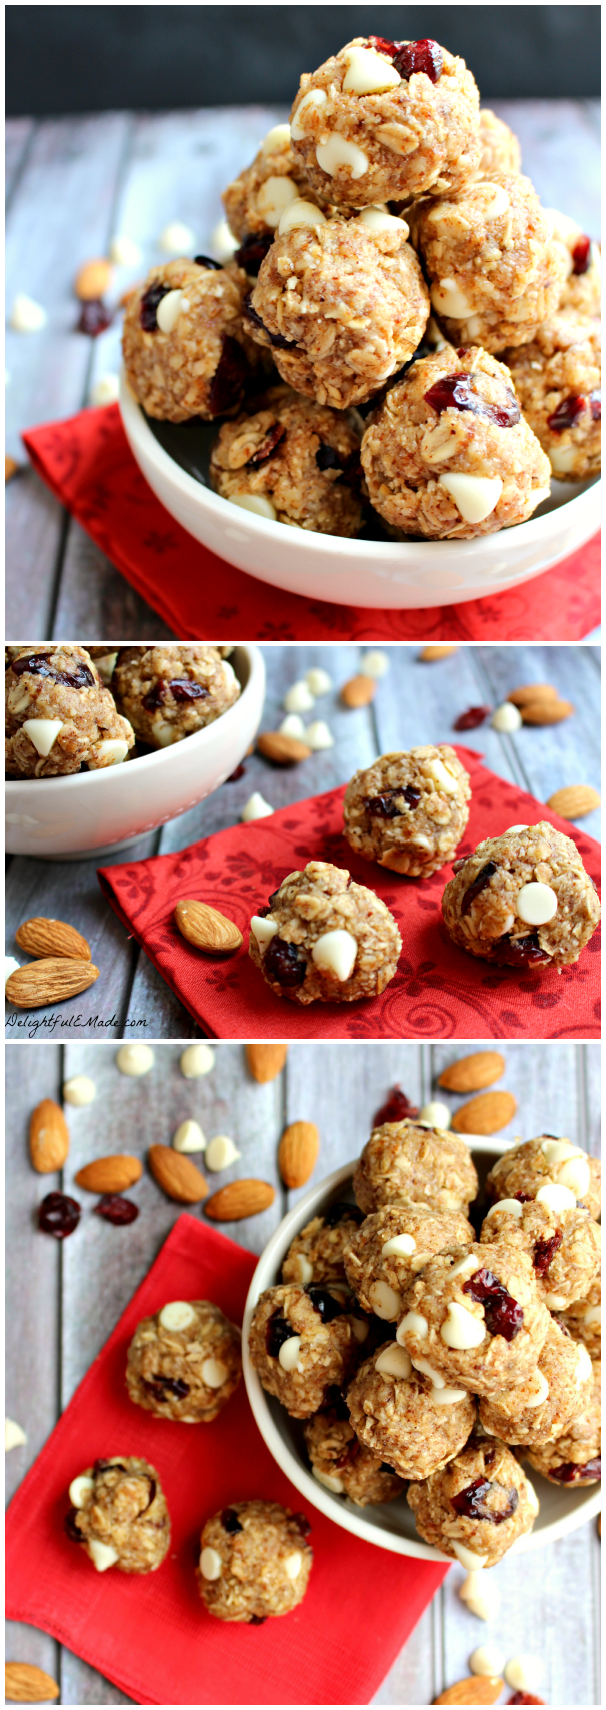 Cranberry Almond Energy Bites by DelightfulEMade.com